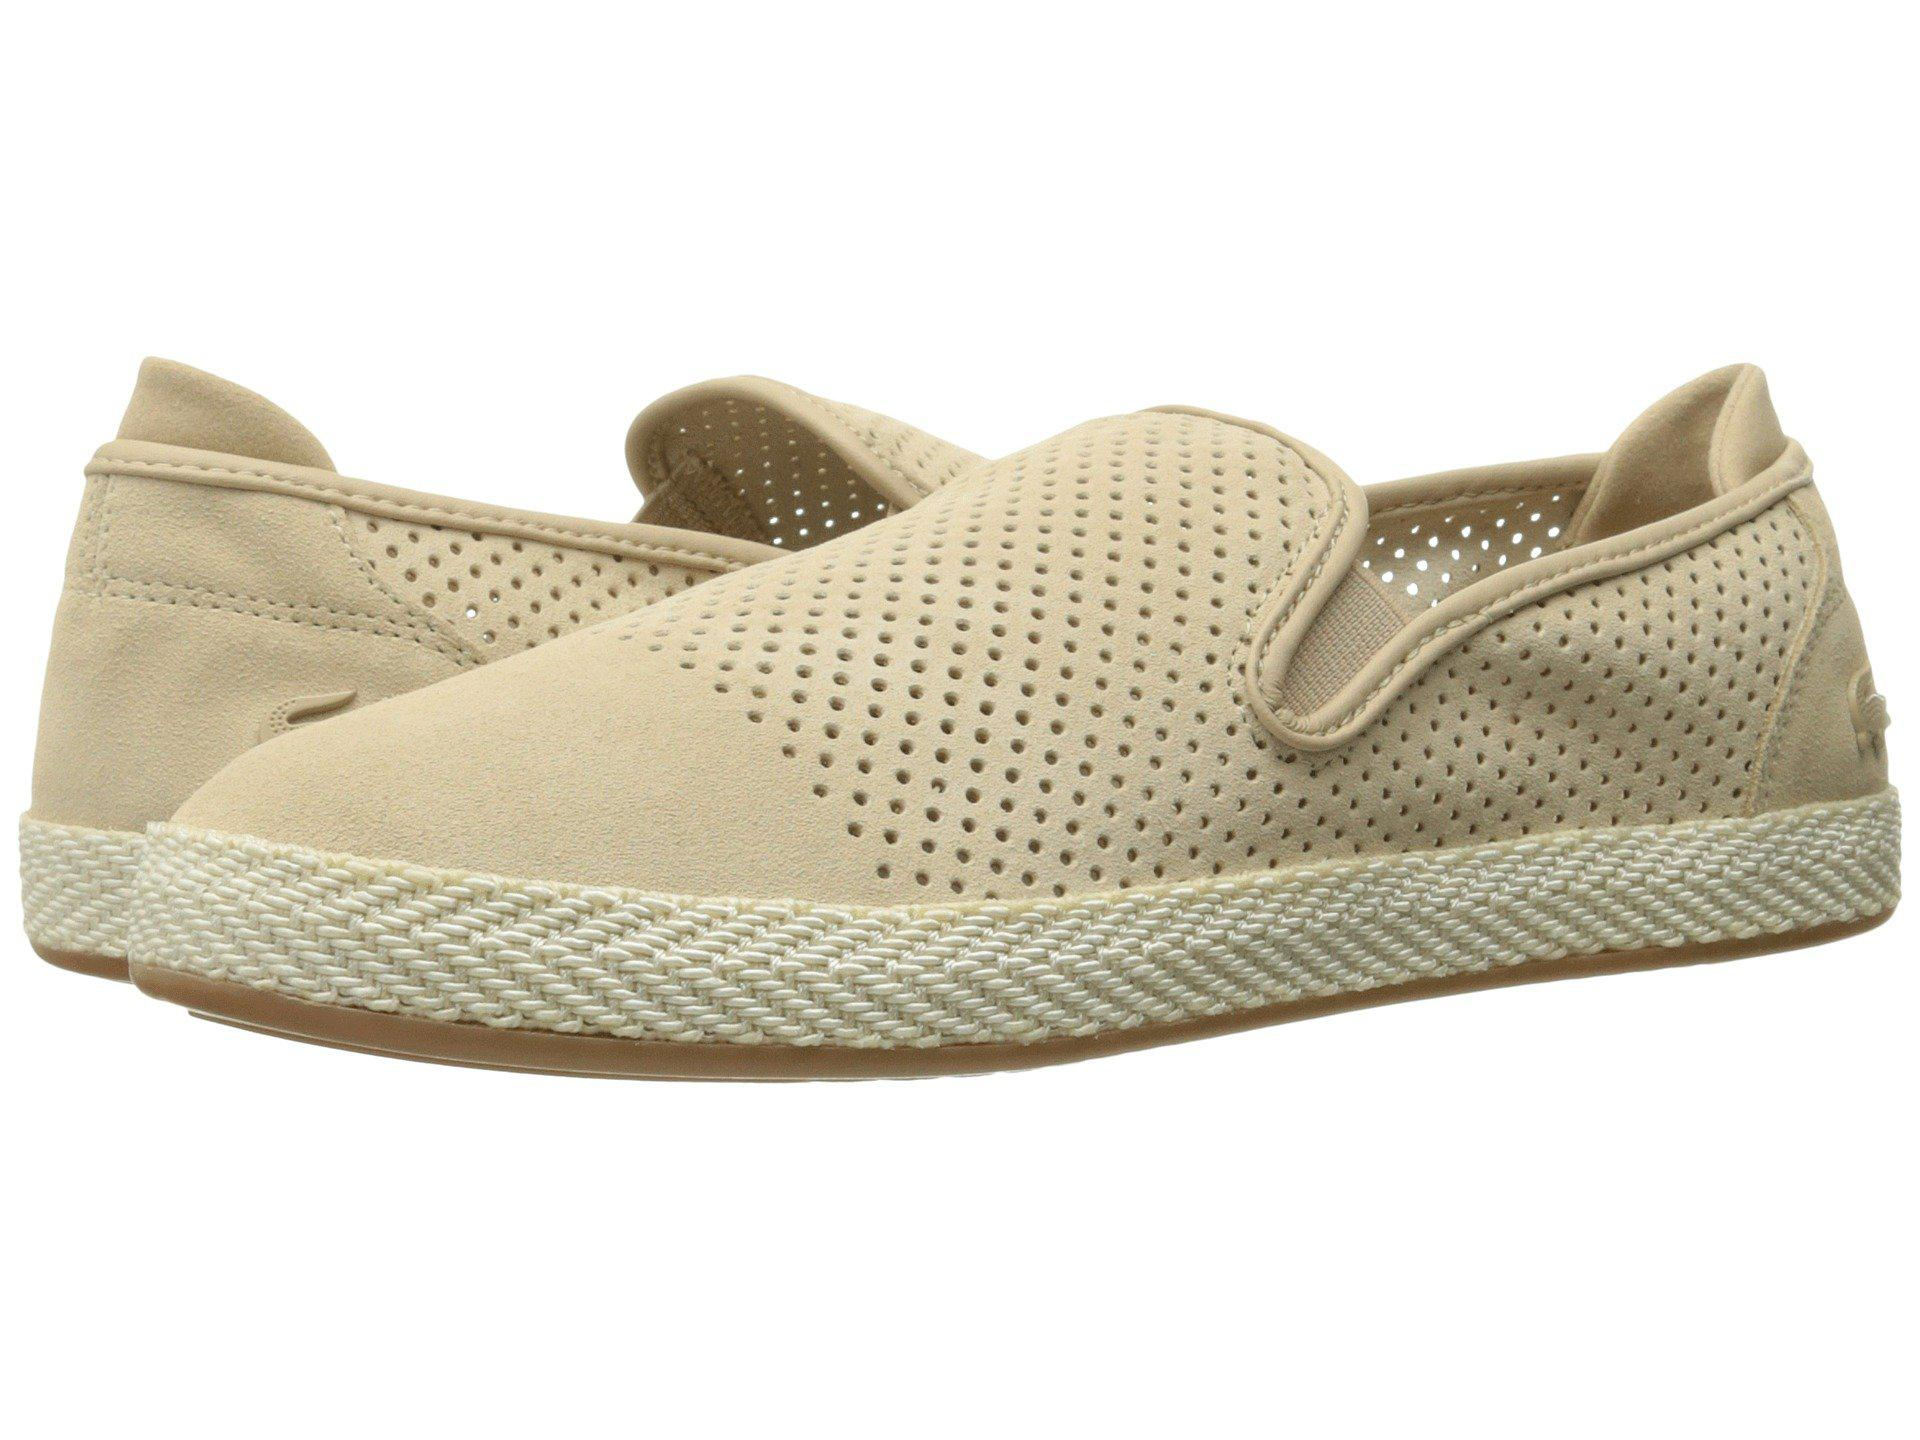 409405d3c4ff11 Lyst - Lacoste Tombre Slip-on 217 1 in Natural for Men